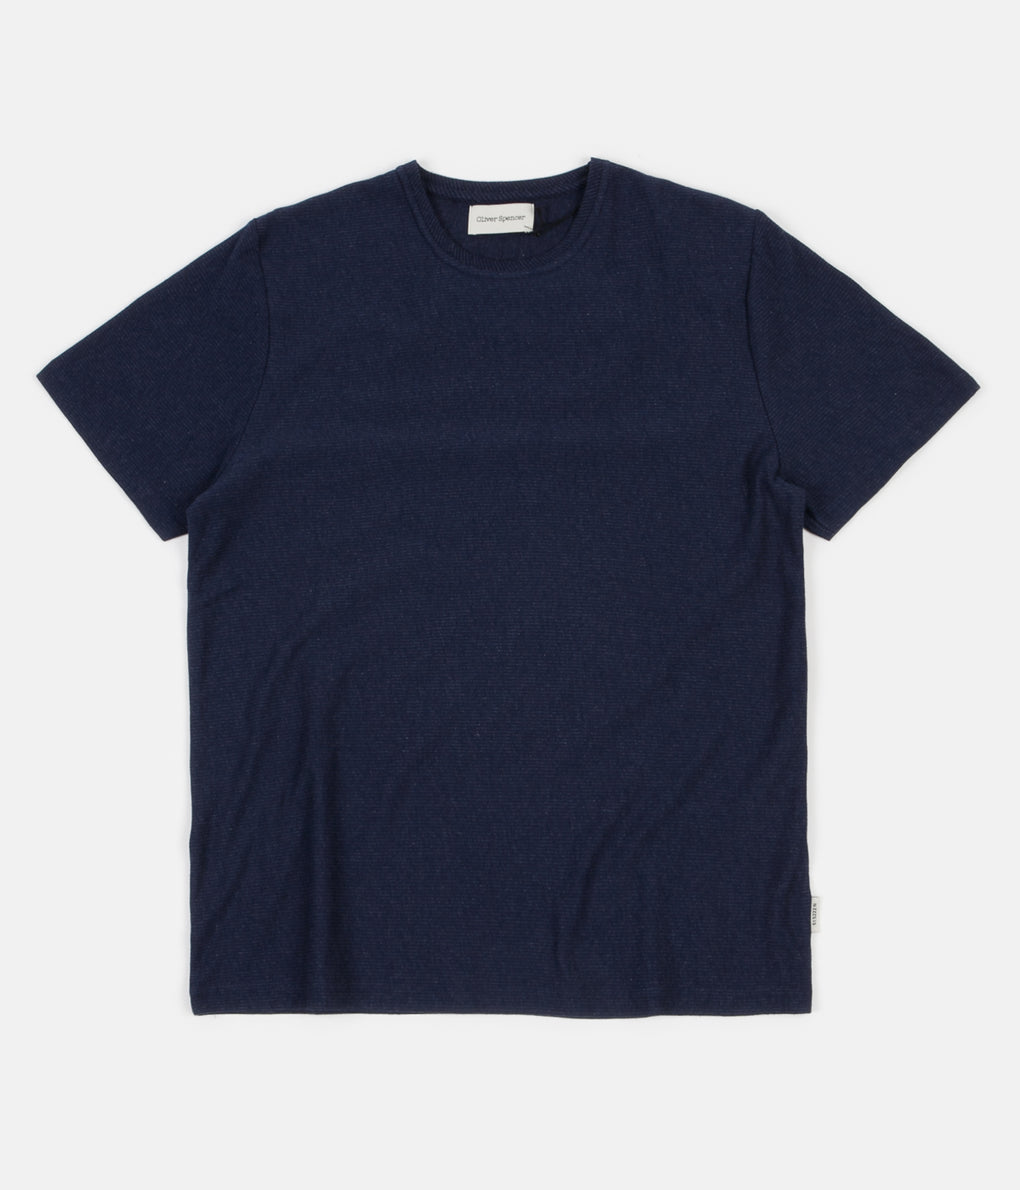 Oliver Spencer Conduit T-Shirt - Oakwell Midnight